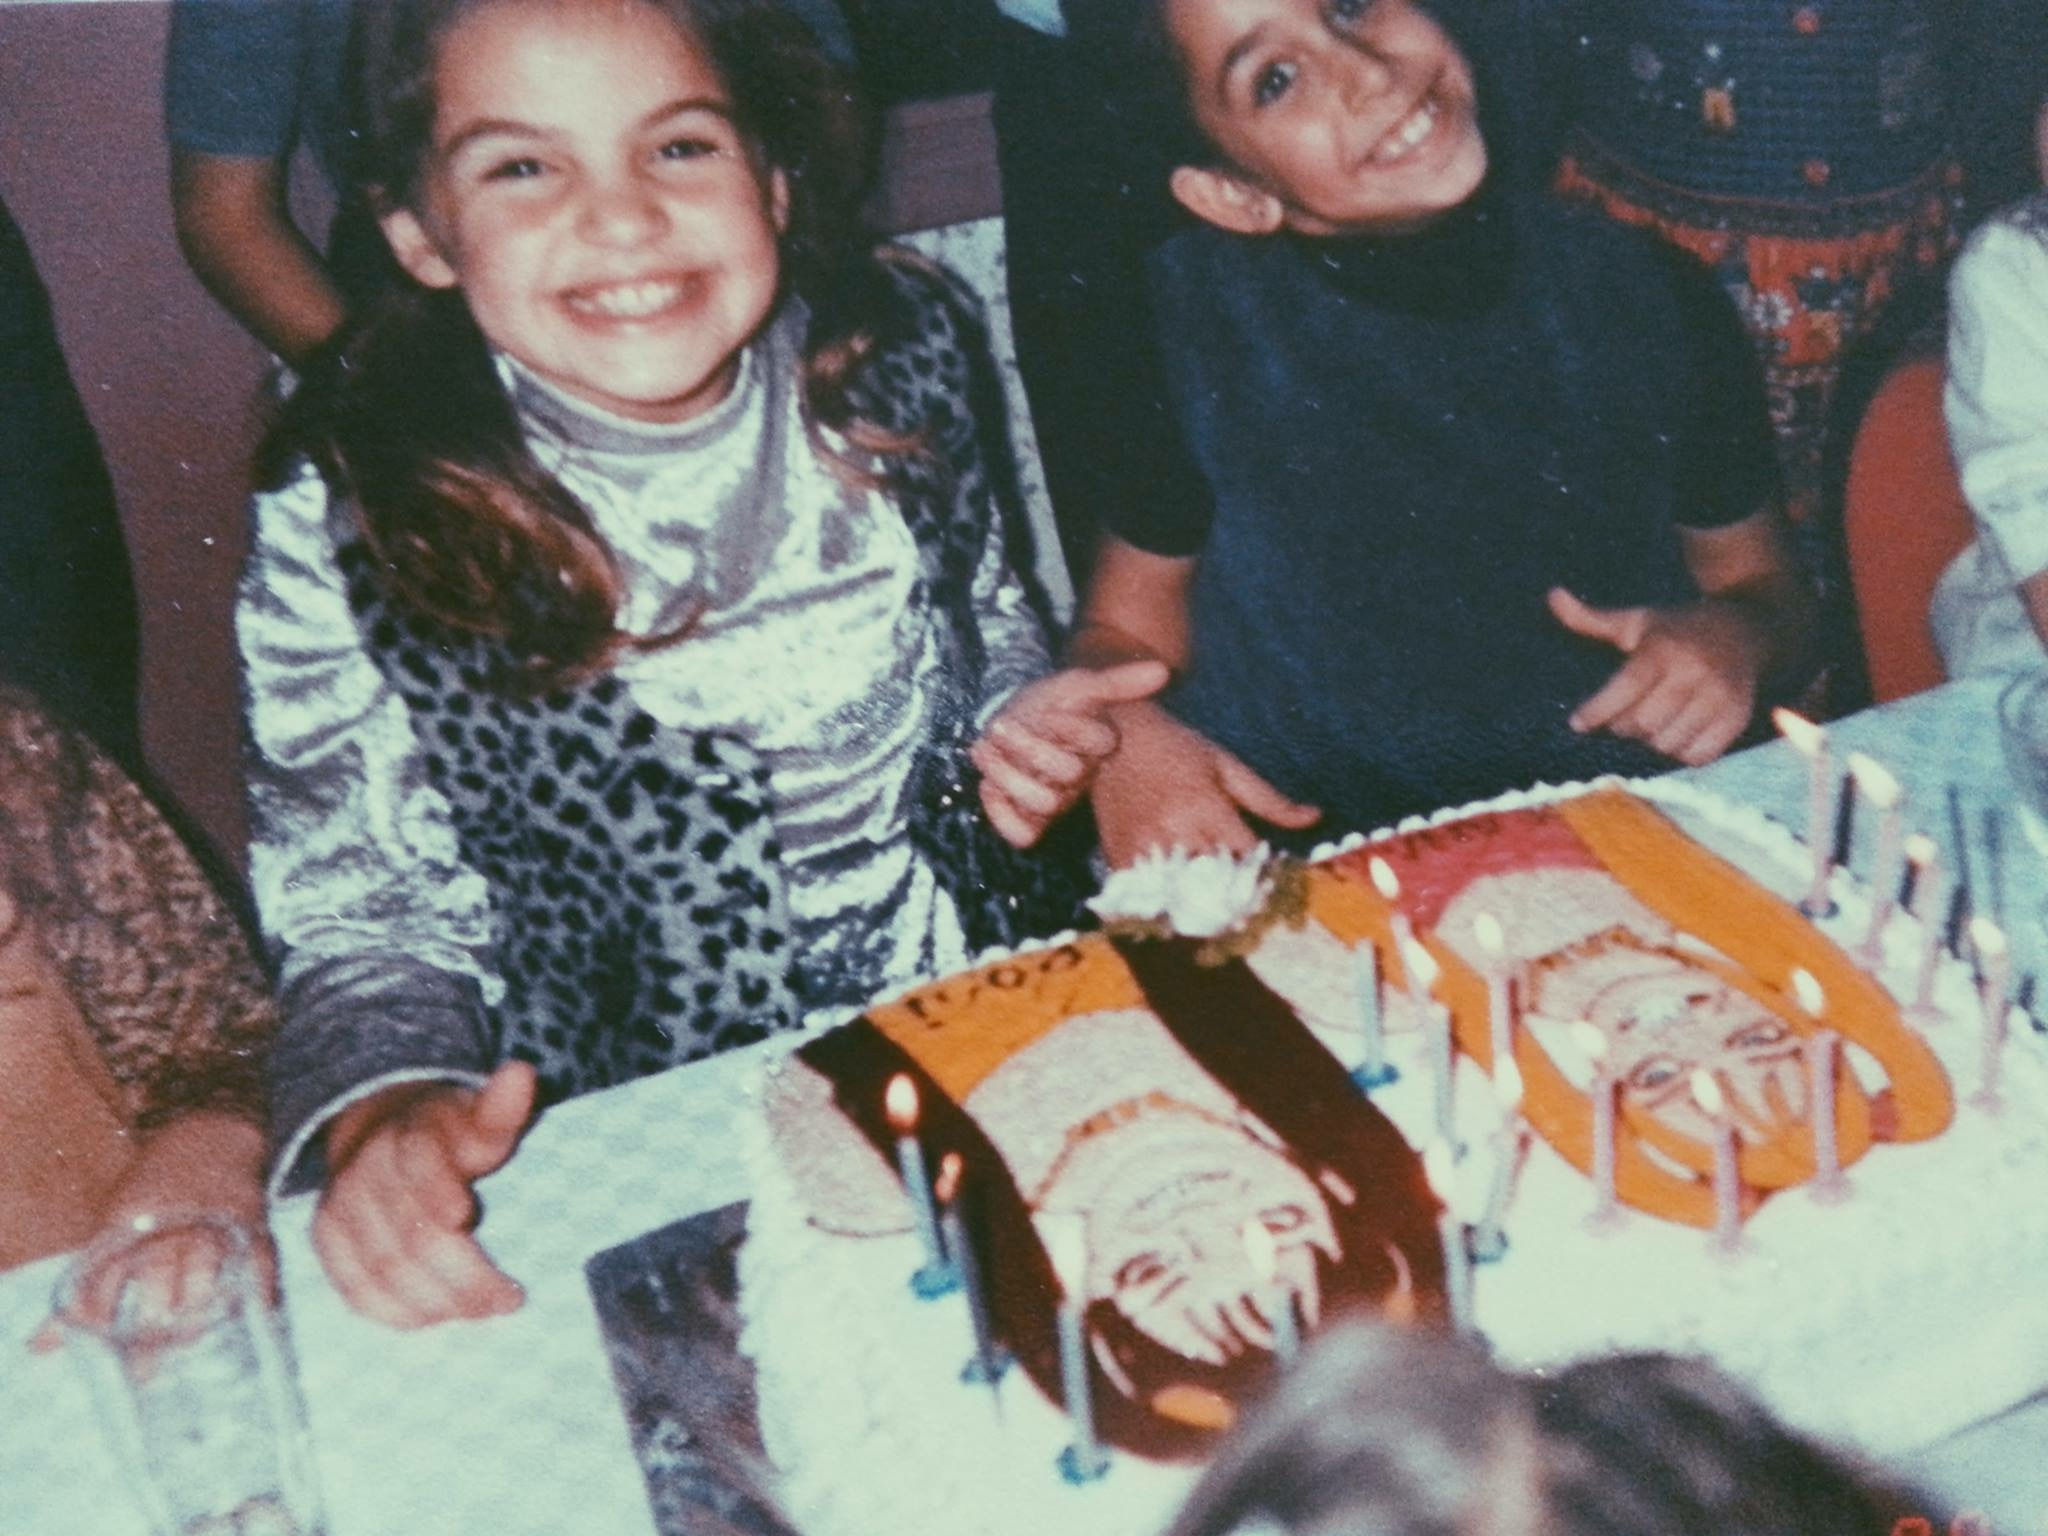 Canan Bolel (left) with her childhood friend, Rozi, in Izmir, Turkey sitting in front of a birthday cake